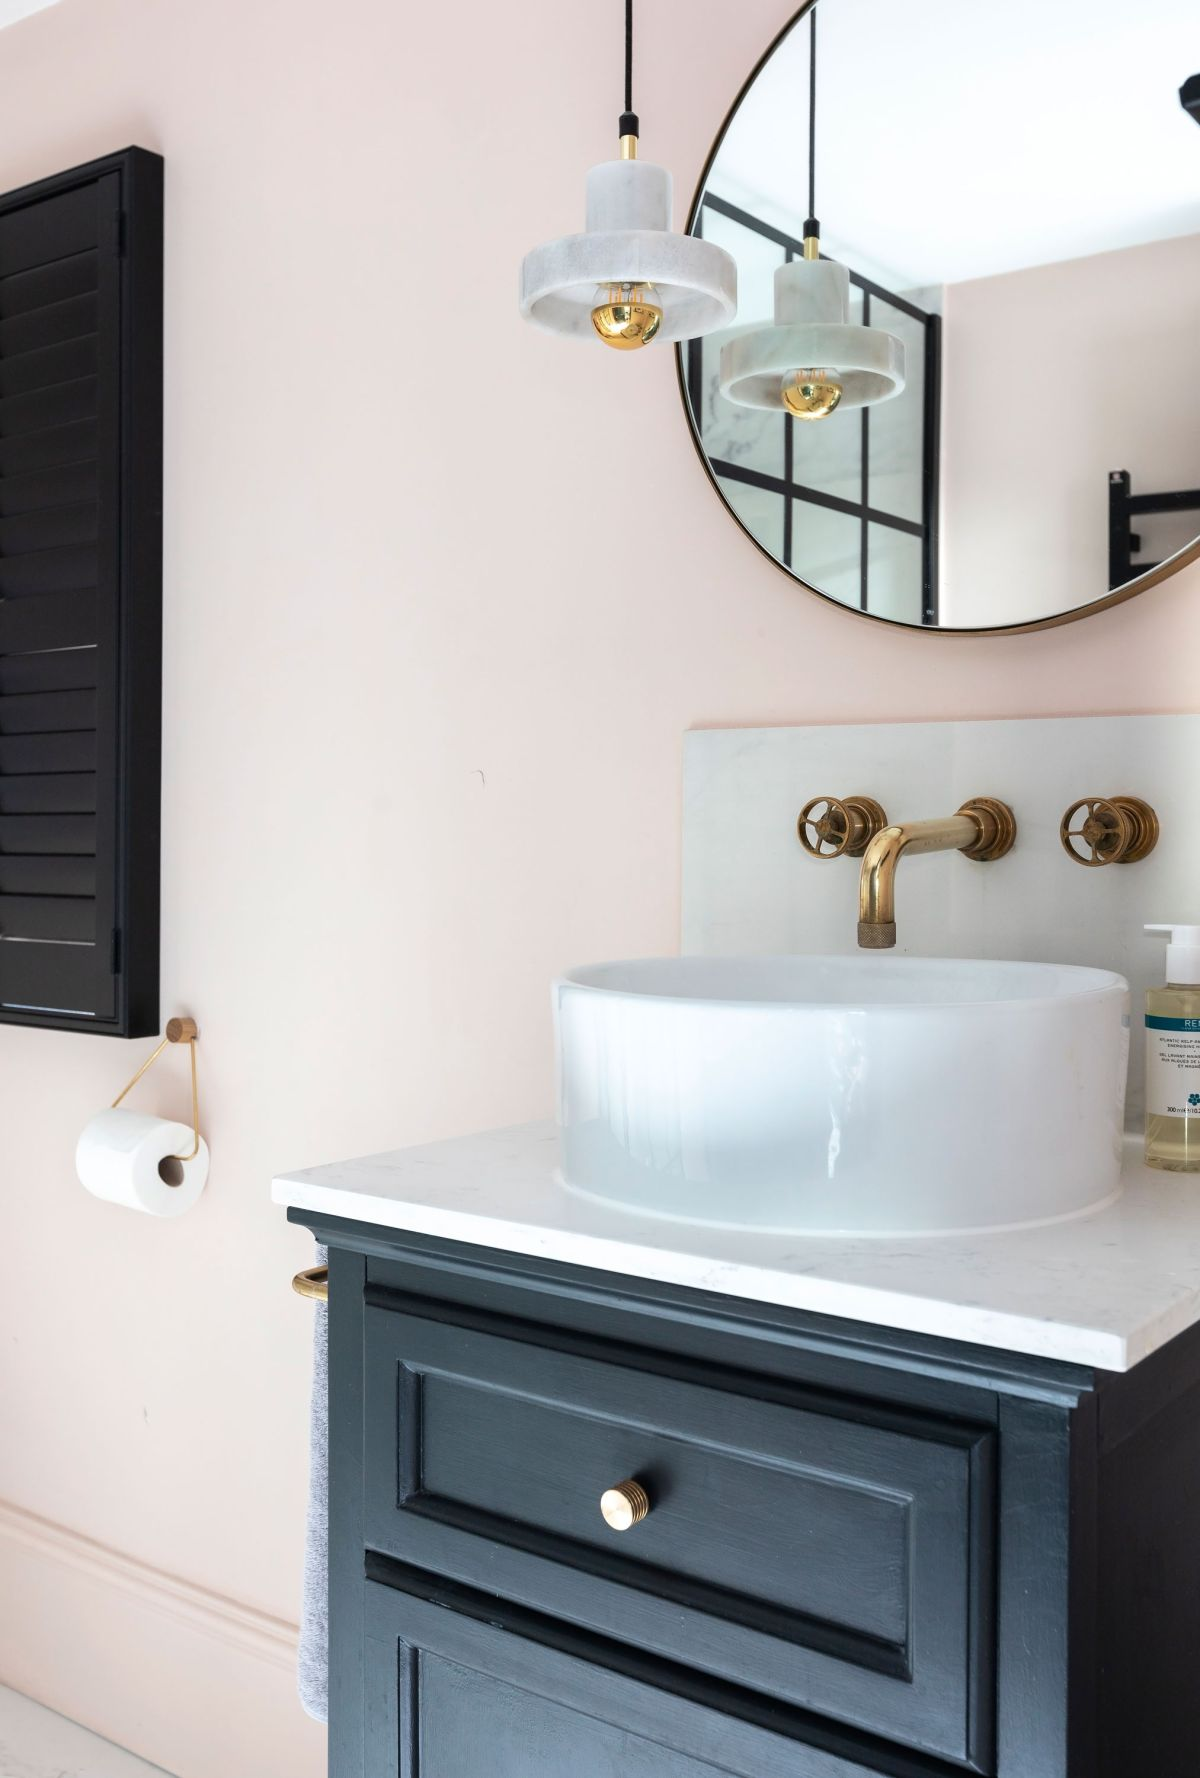 Image of: Bathroom Paint Ideas 19 Colour Schemes To Brighten Up Your Bathroom Space Real Homes